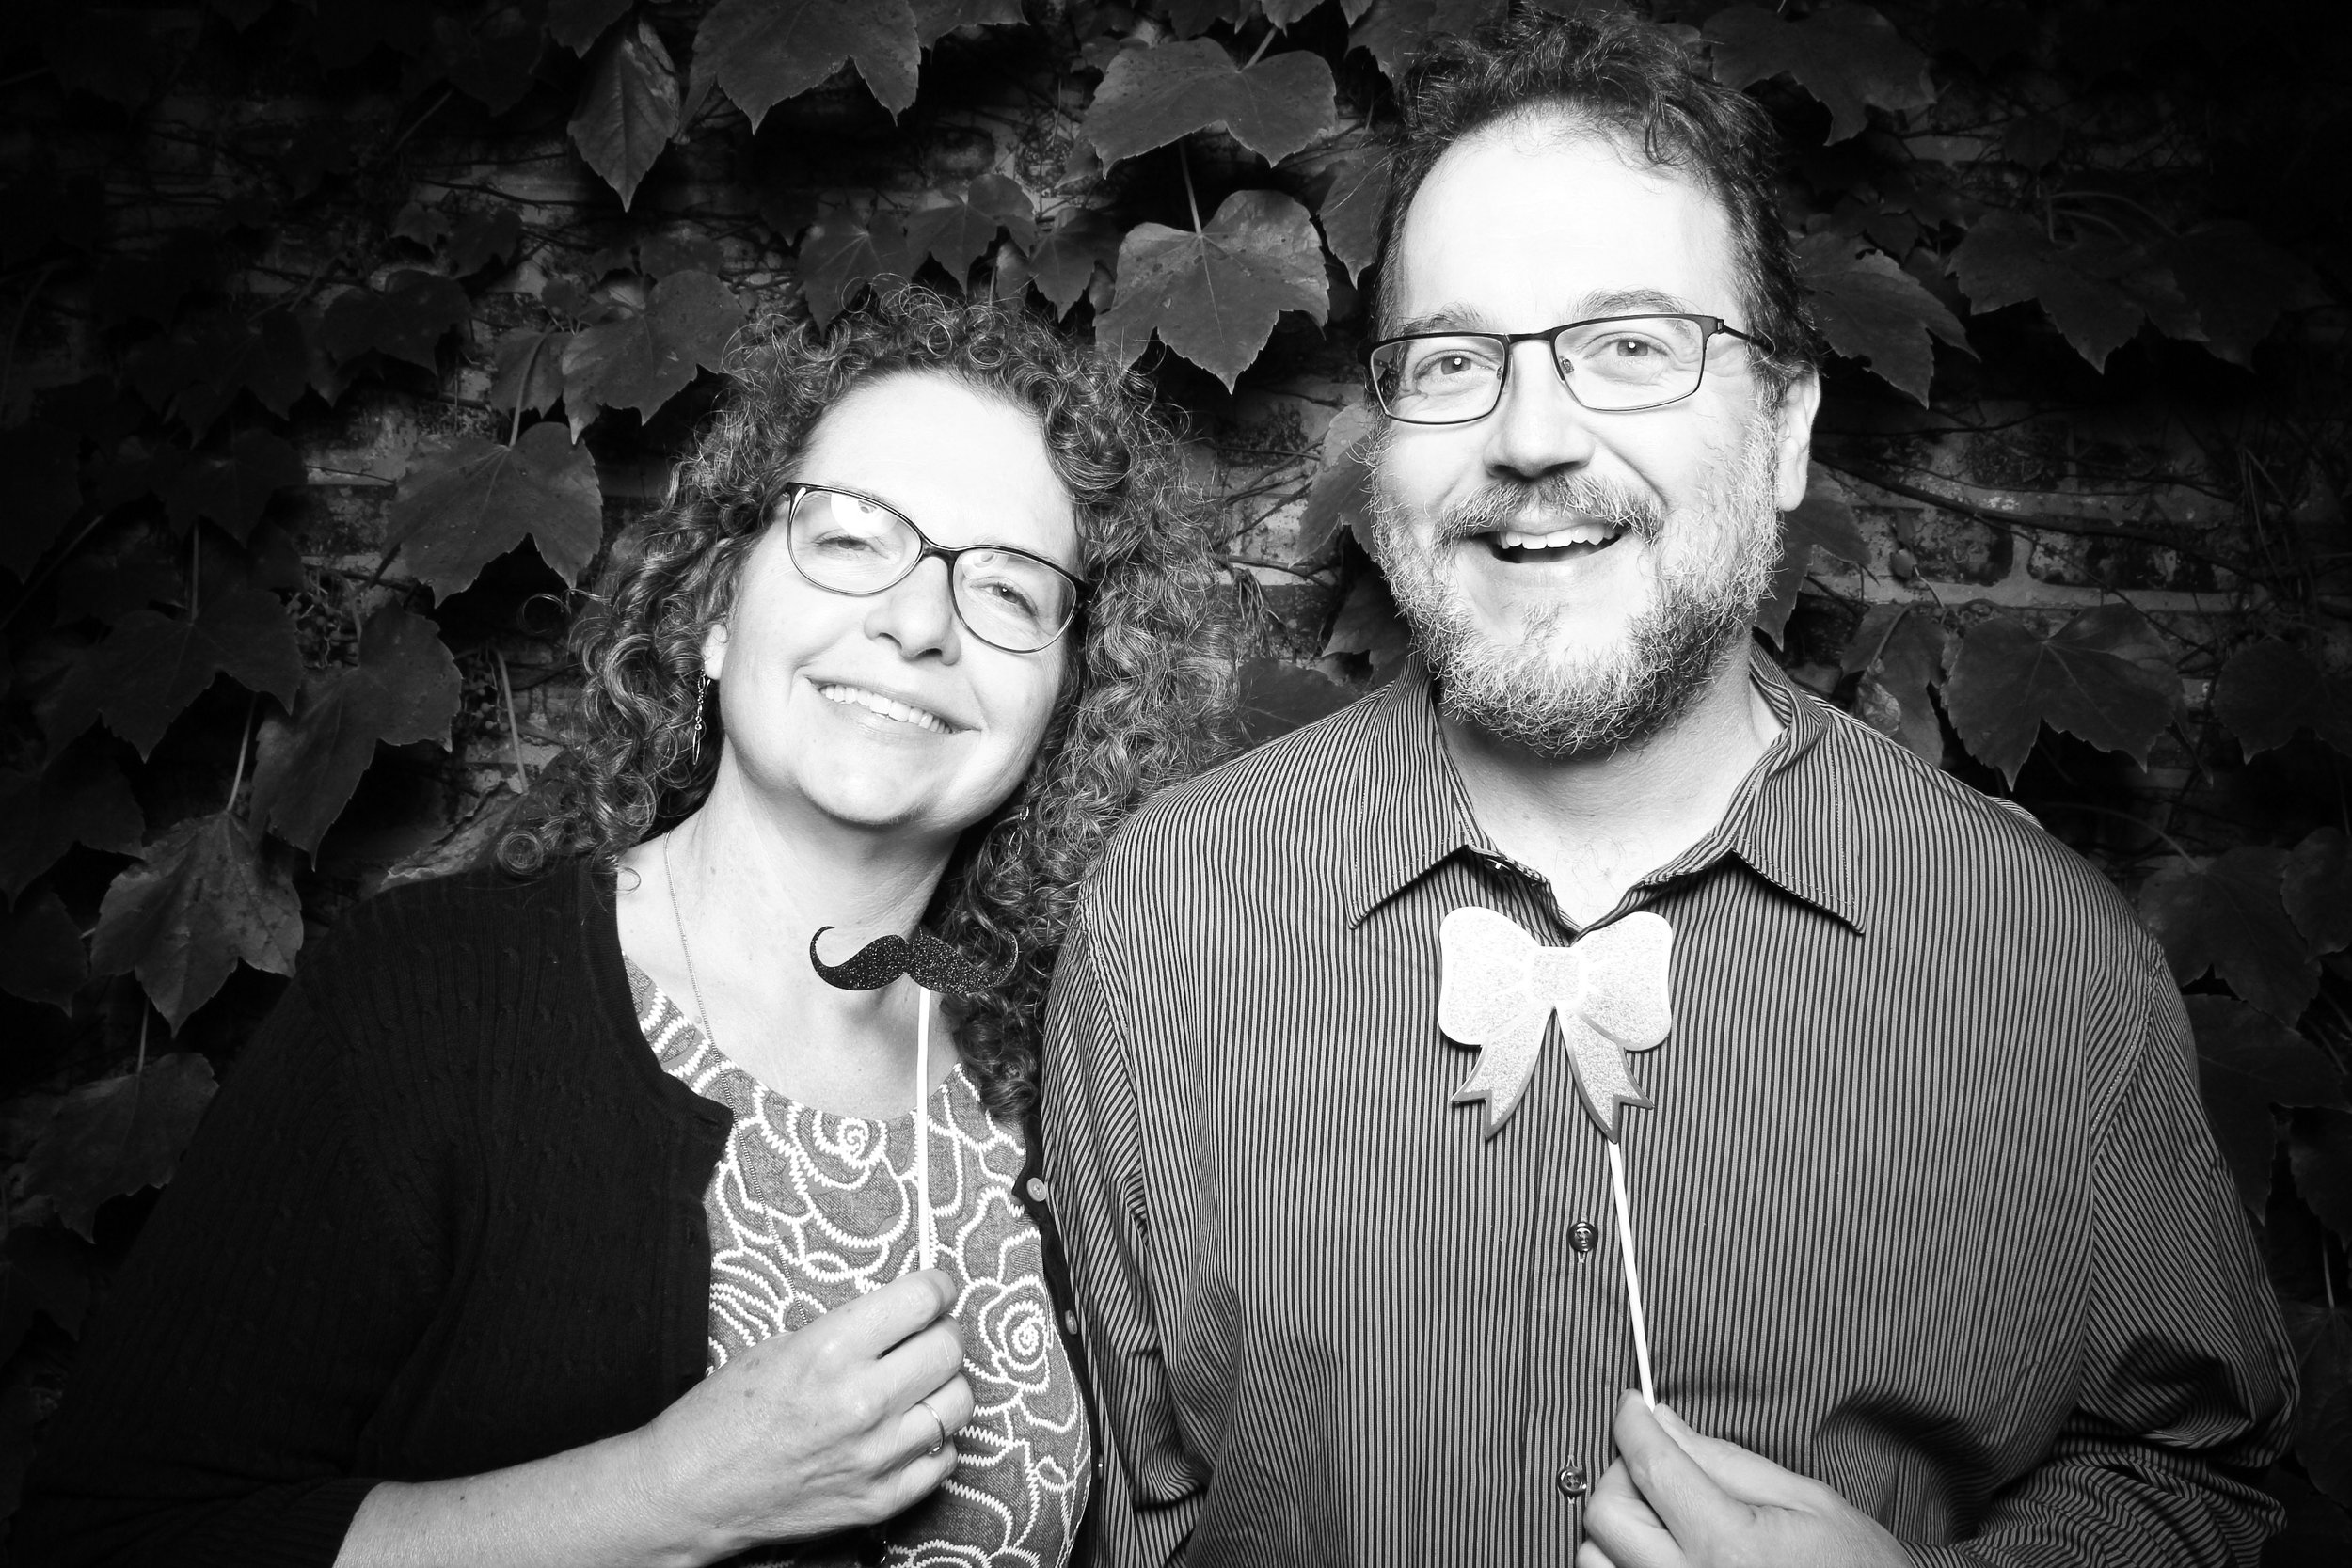 Chicago_Vintage_Wedding_Photobooth_Firehouse_01.jpg